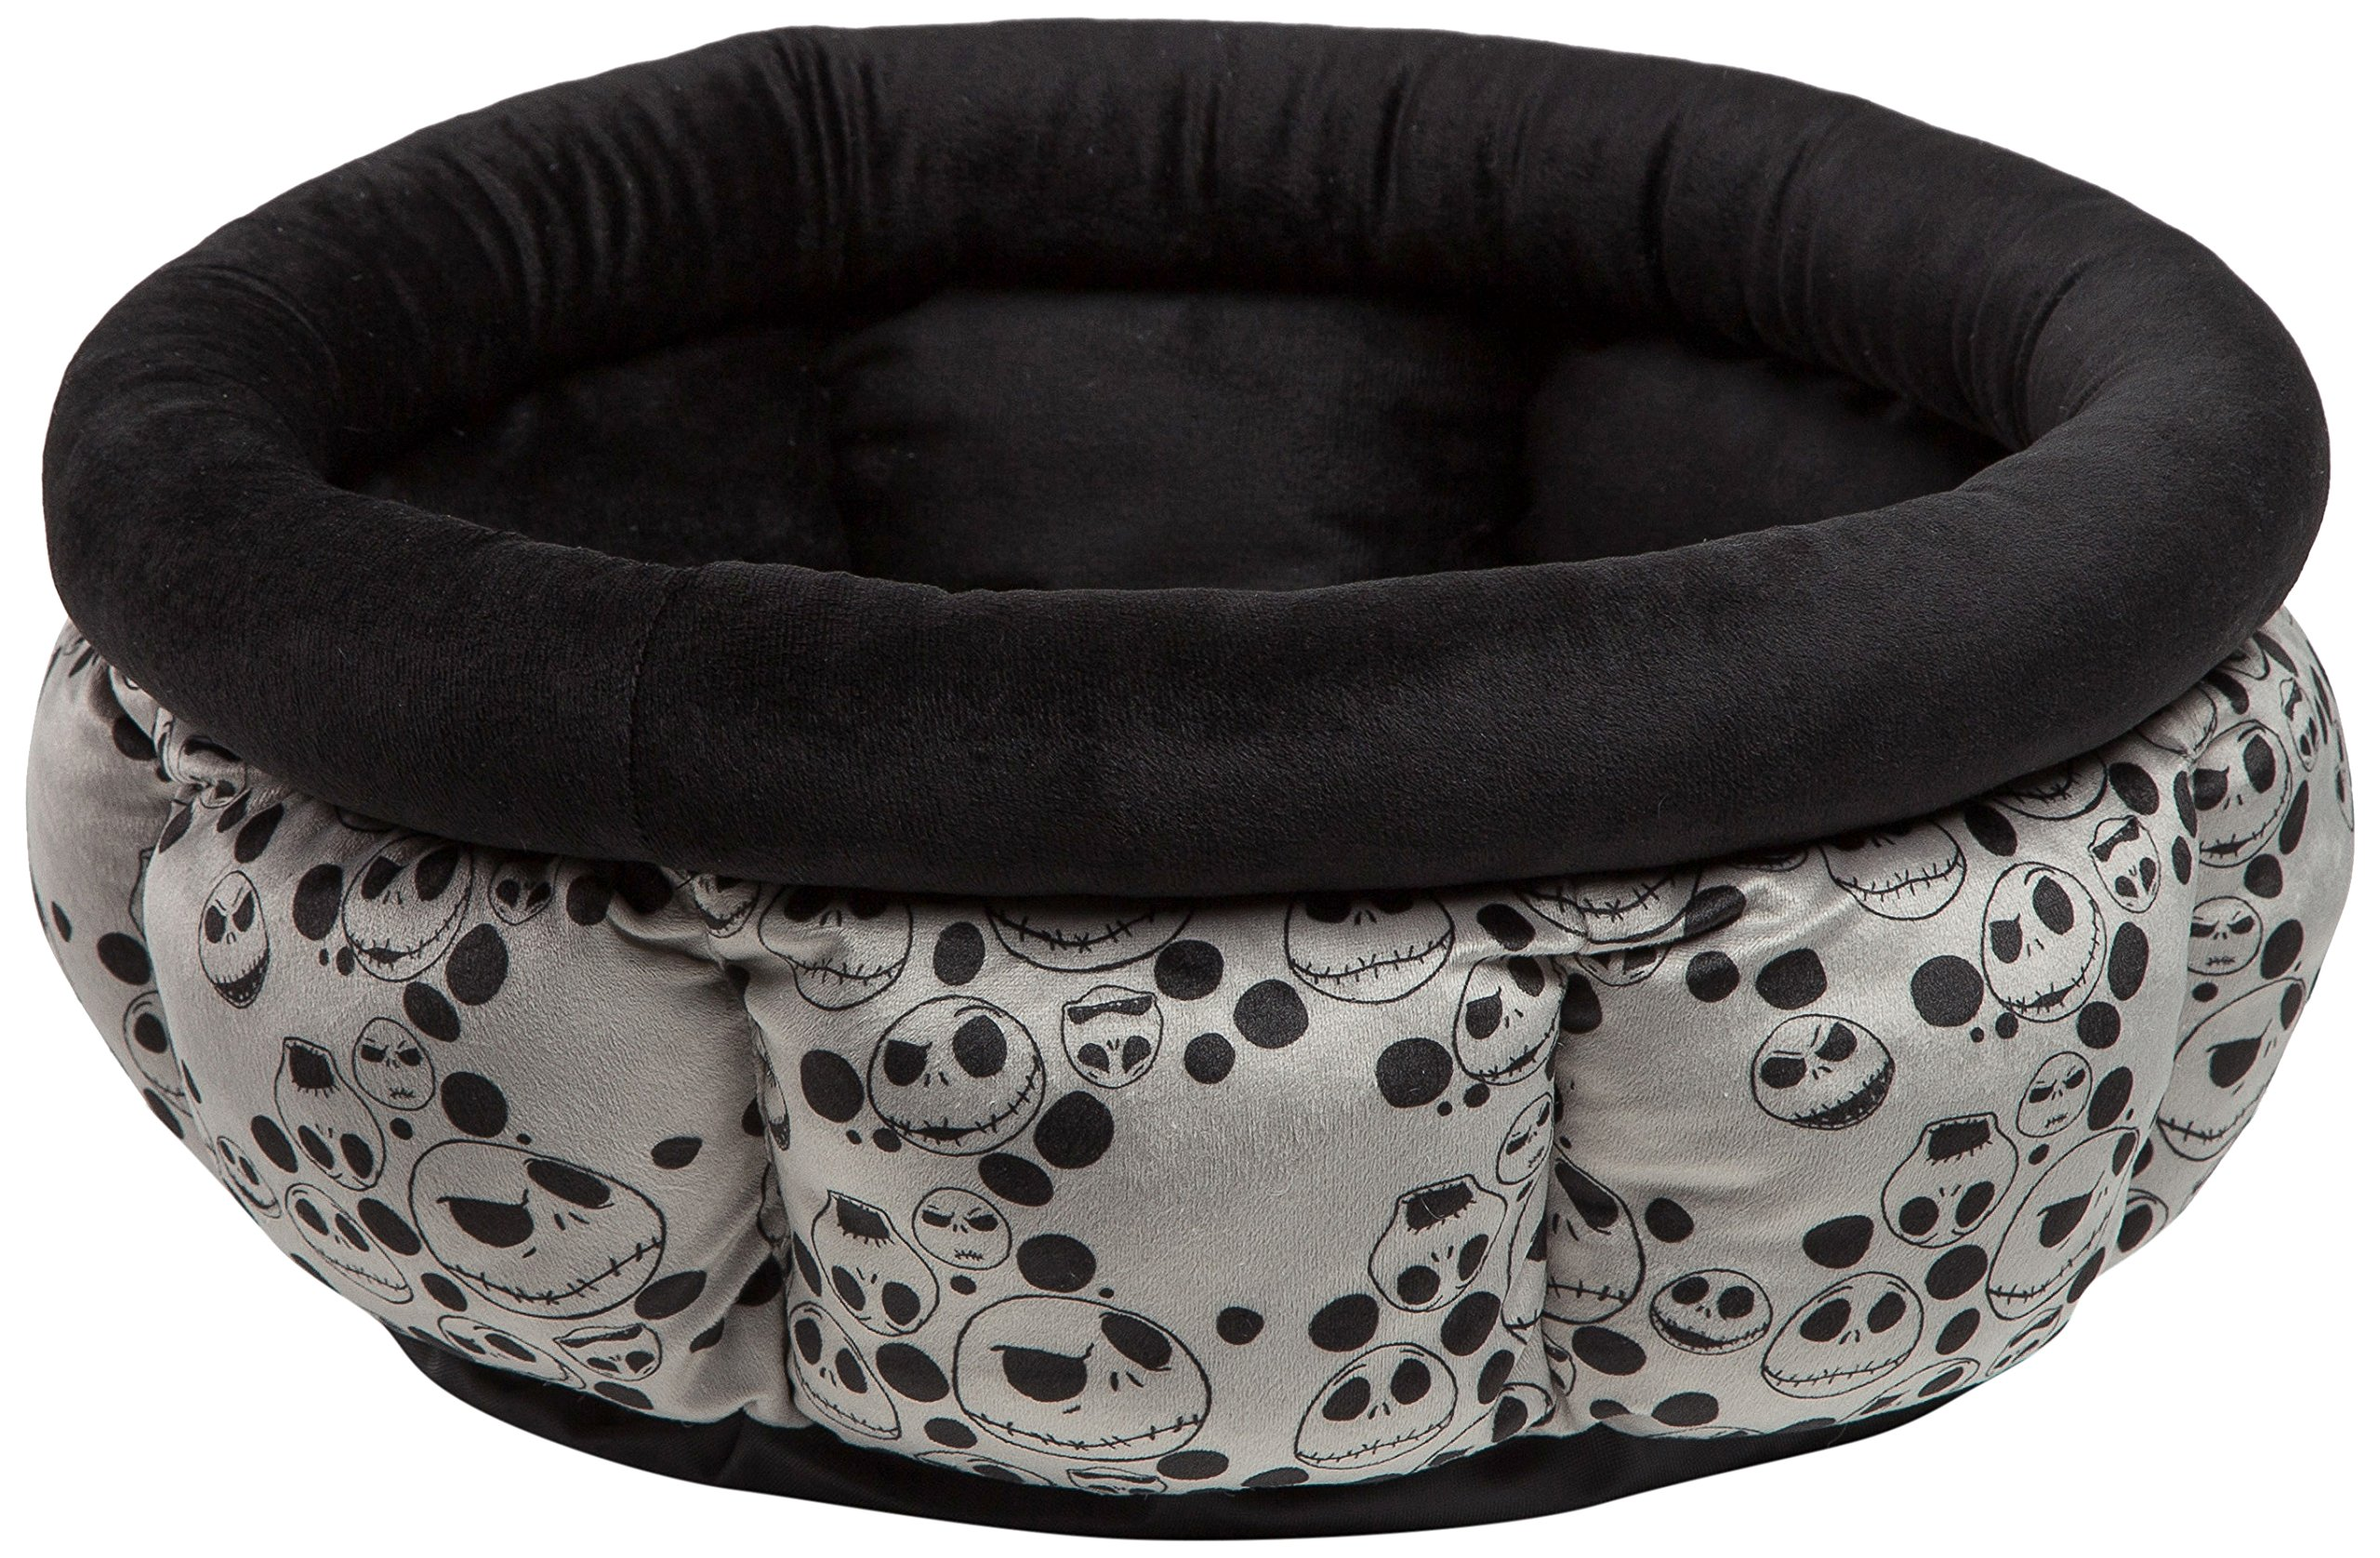 Disney Nightmare Before Christmas Jack Skellington Cuddle Cup Dog Bed / Cat Bed, Machine Washable, Dirt/Water Resistant Bottom, High Walls for Deeper Rest, For Pets up to 12lbs by Disney